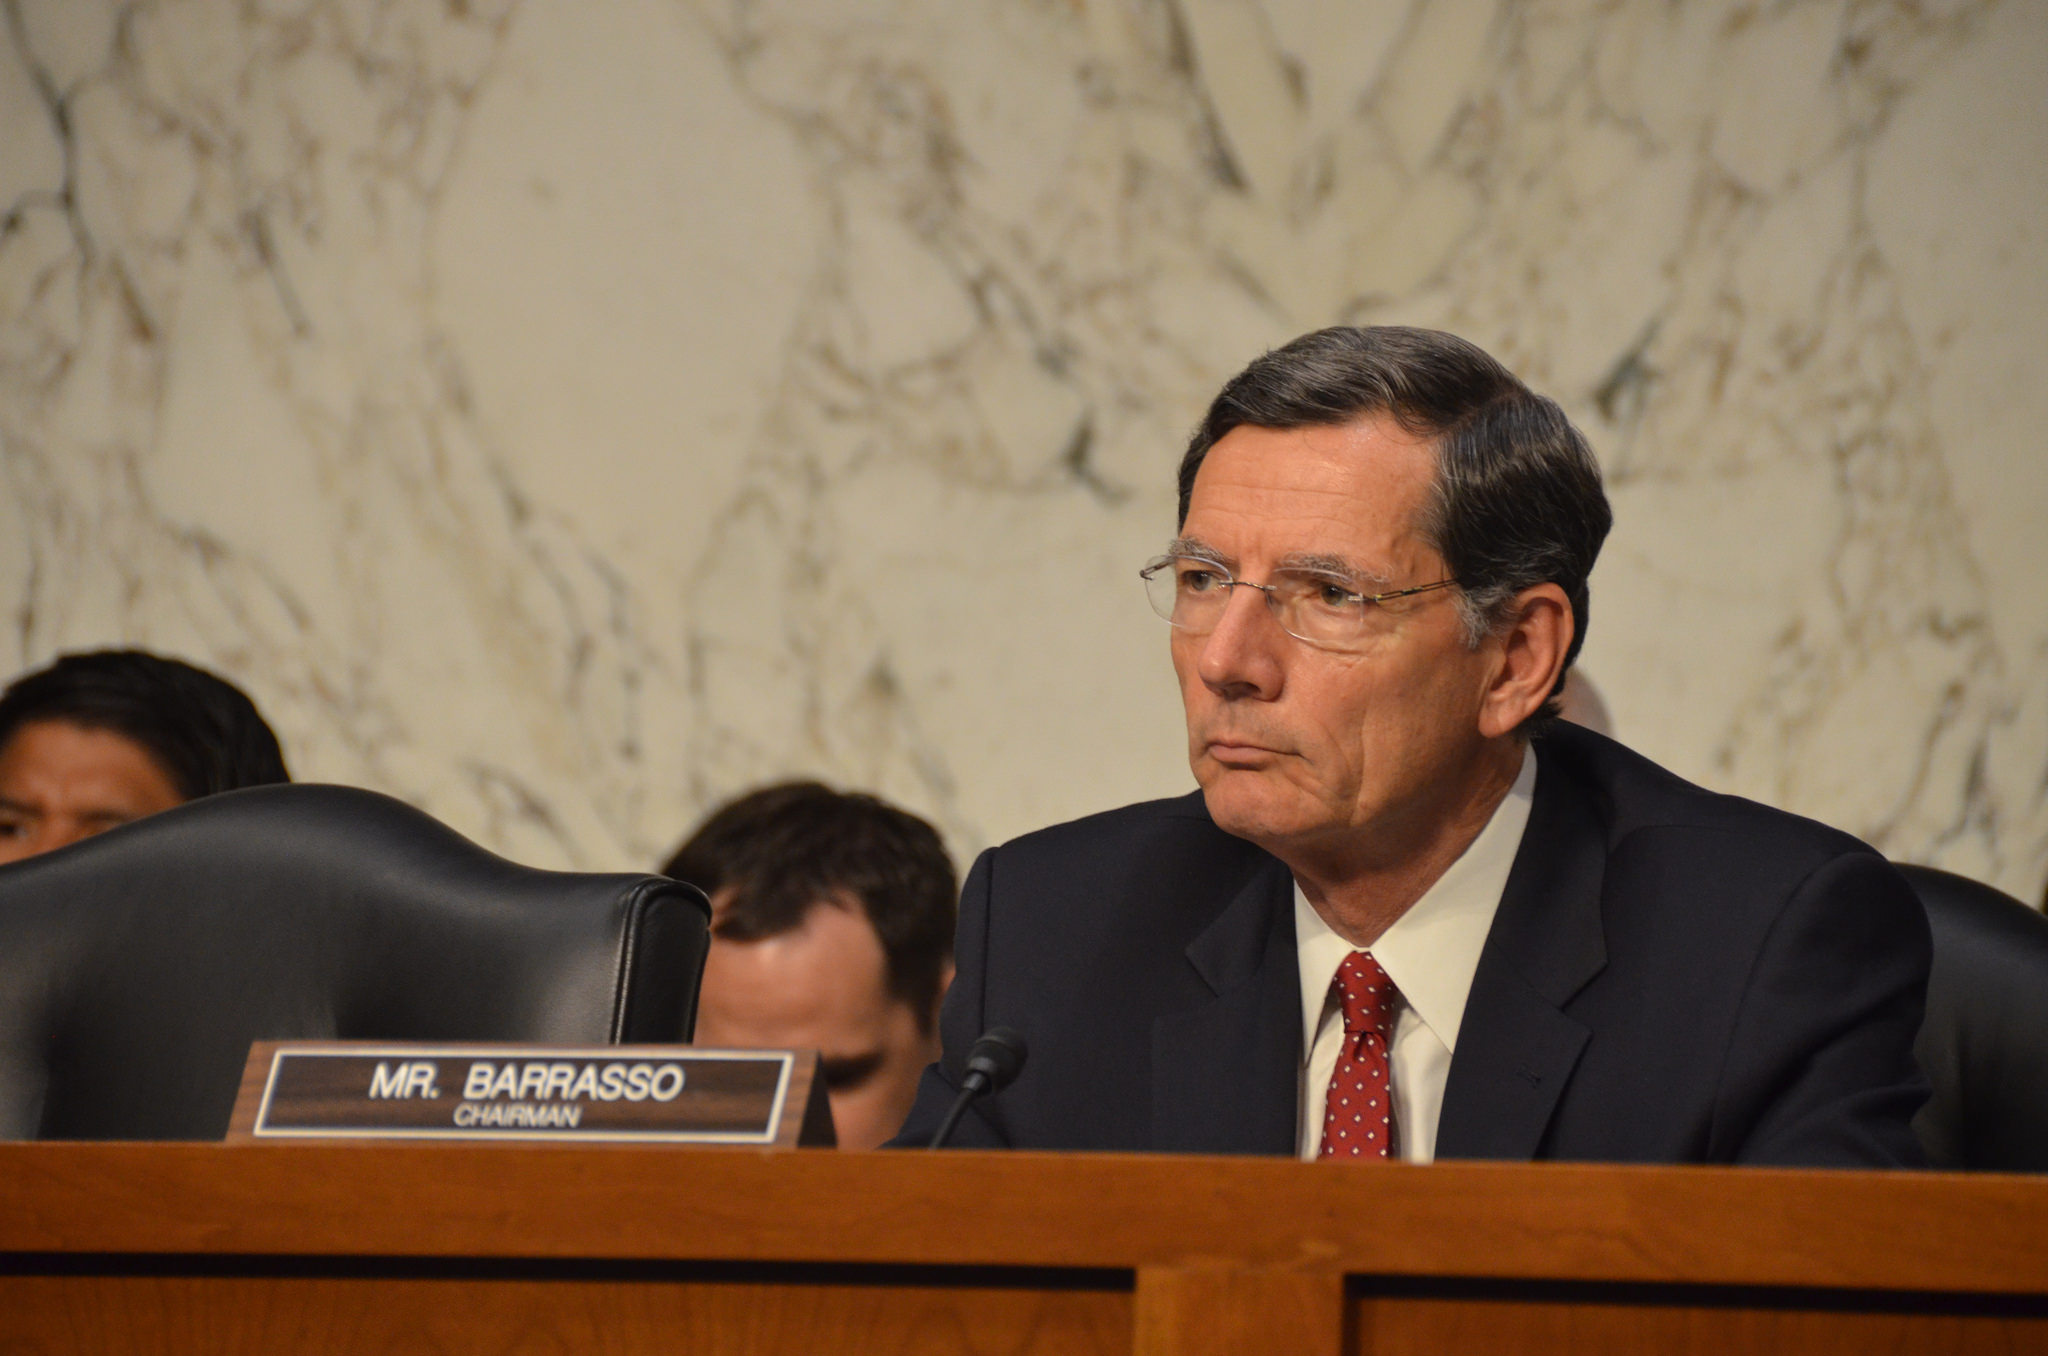 Sen. Barrasso defends quick movement on transportation bill